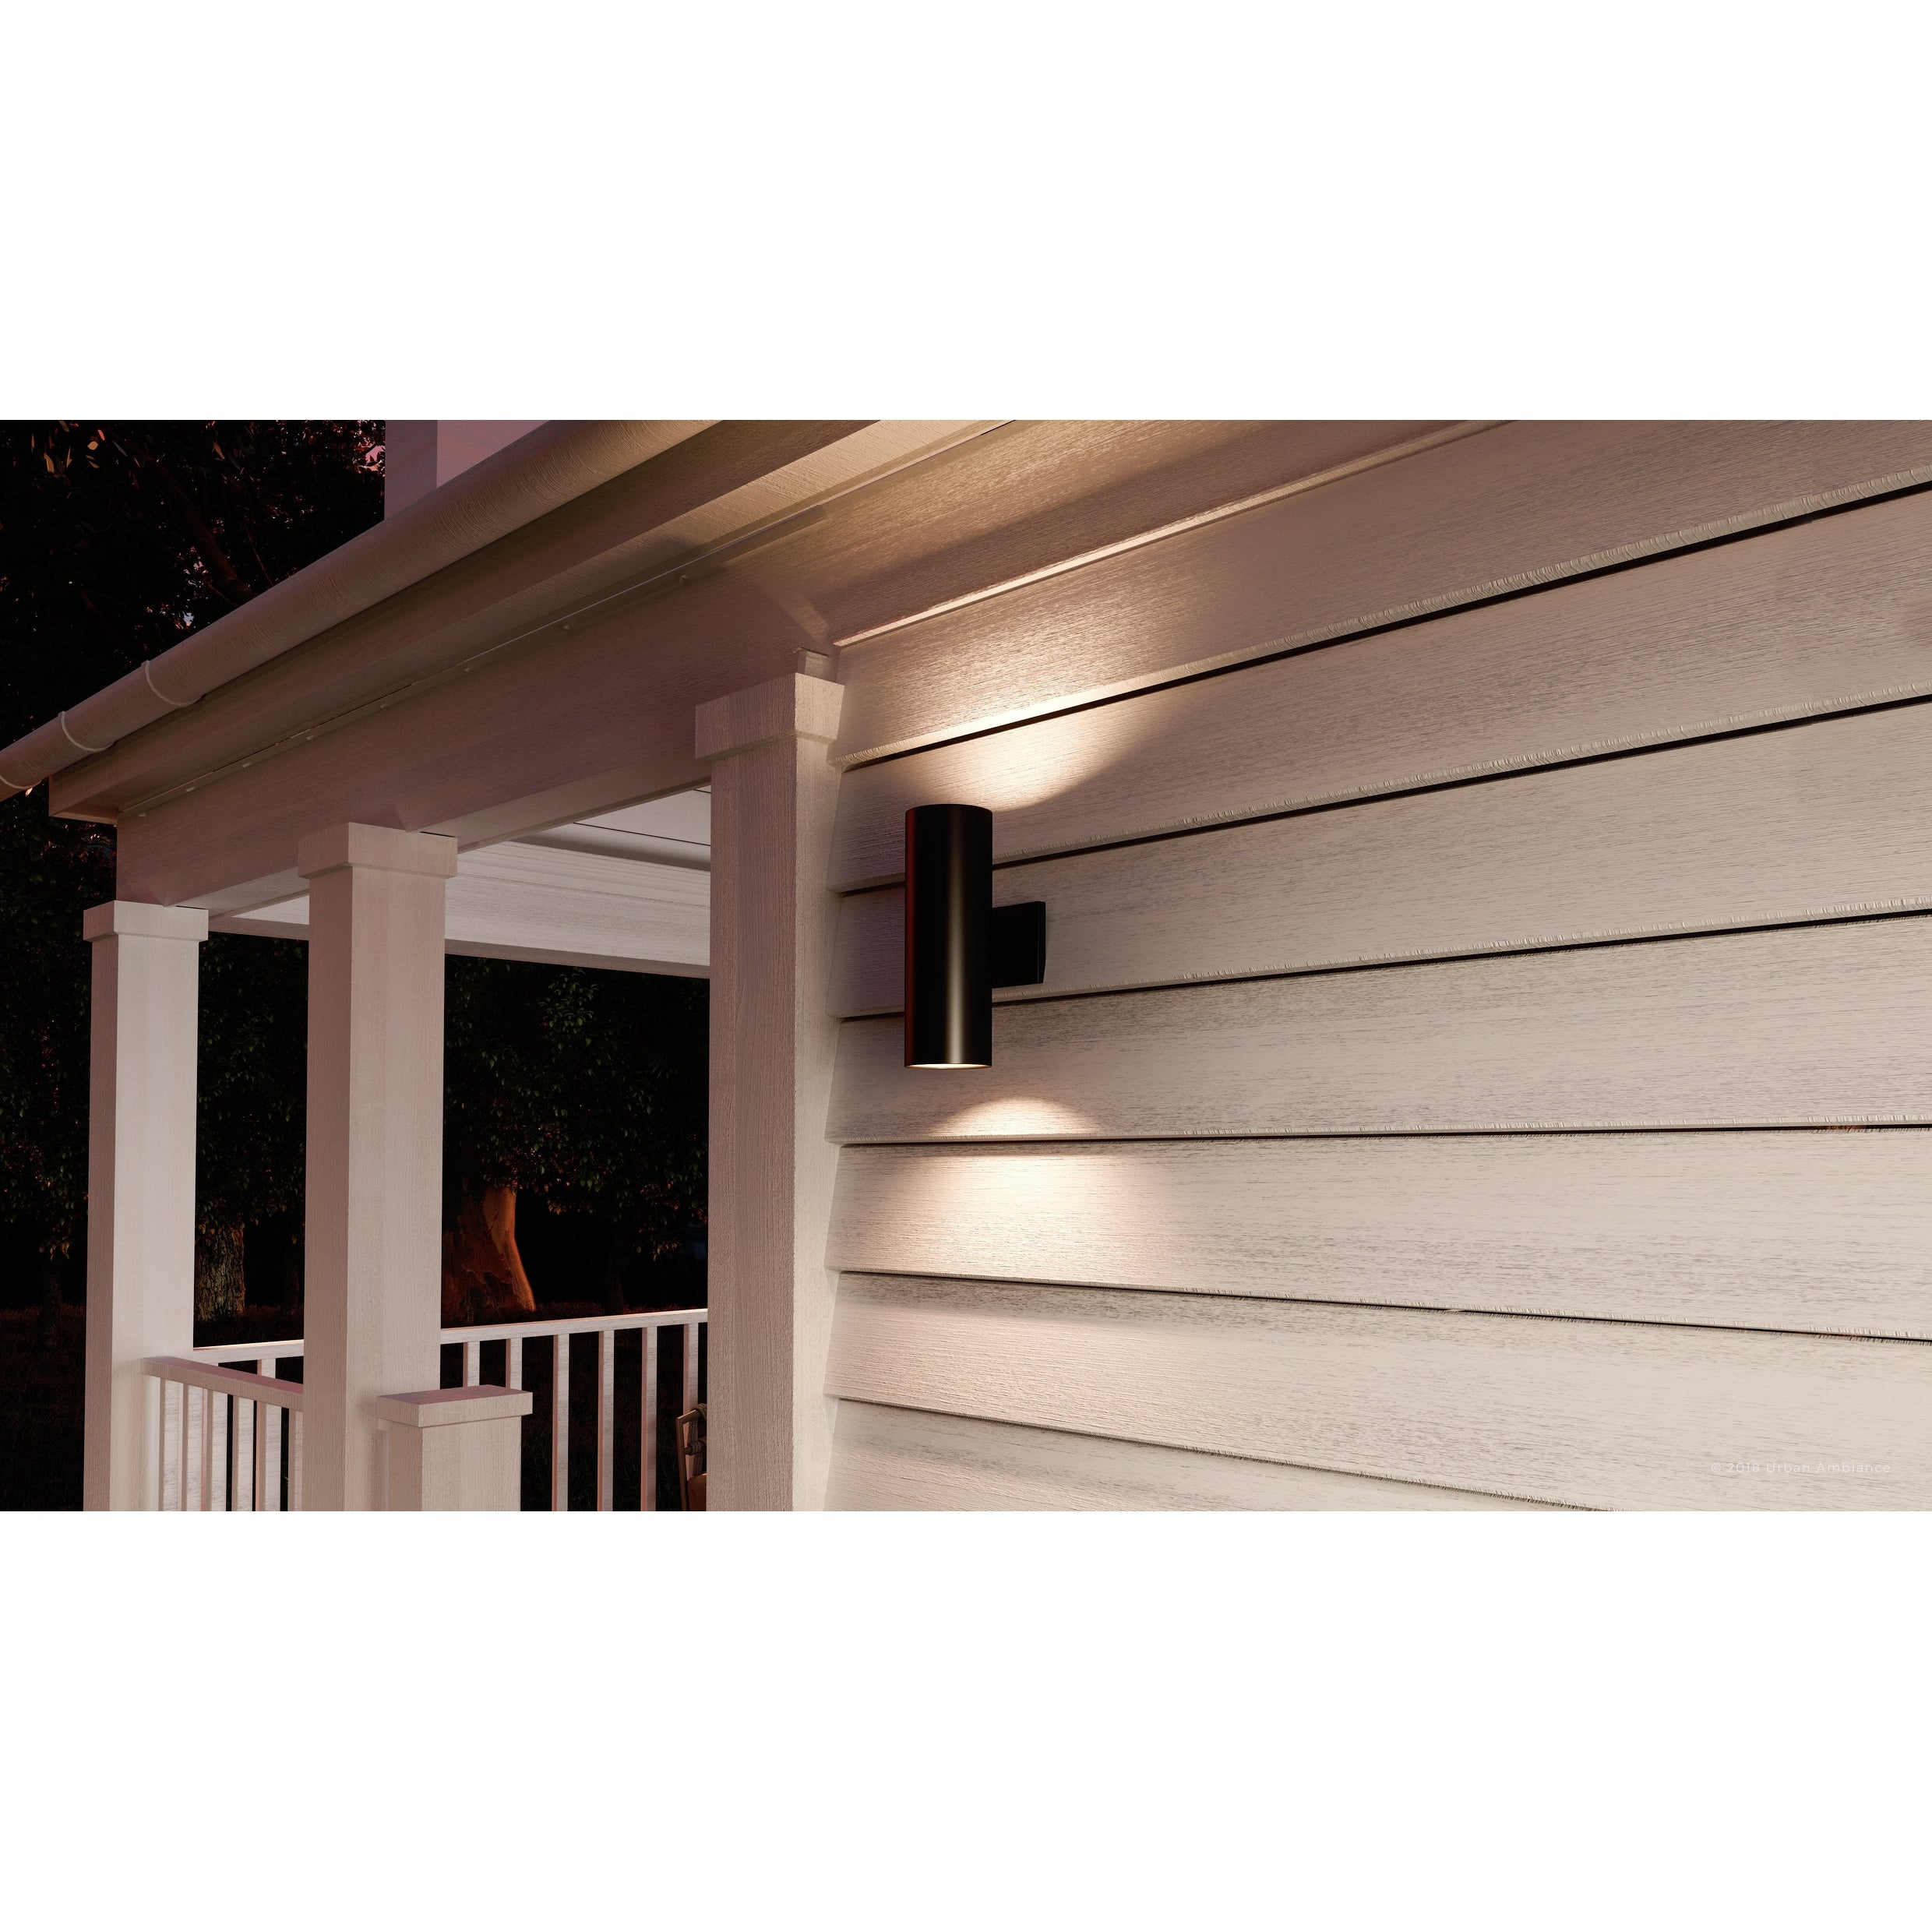 Shop Black Friday Deals On Luxury Contemporary Outdoor Wall Light 14 H X 5 W With Art Deco Style Elements Olde Bronze Finish By Urban Ambiance Overstock 22809272